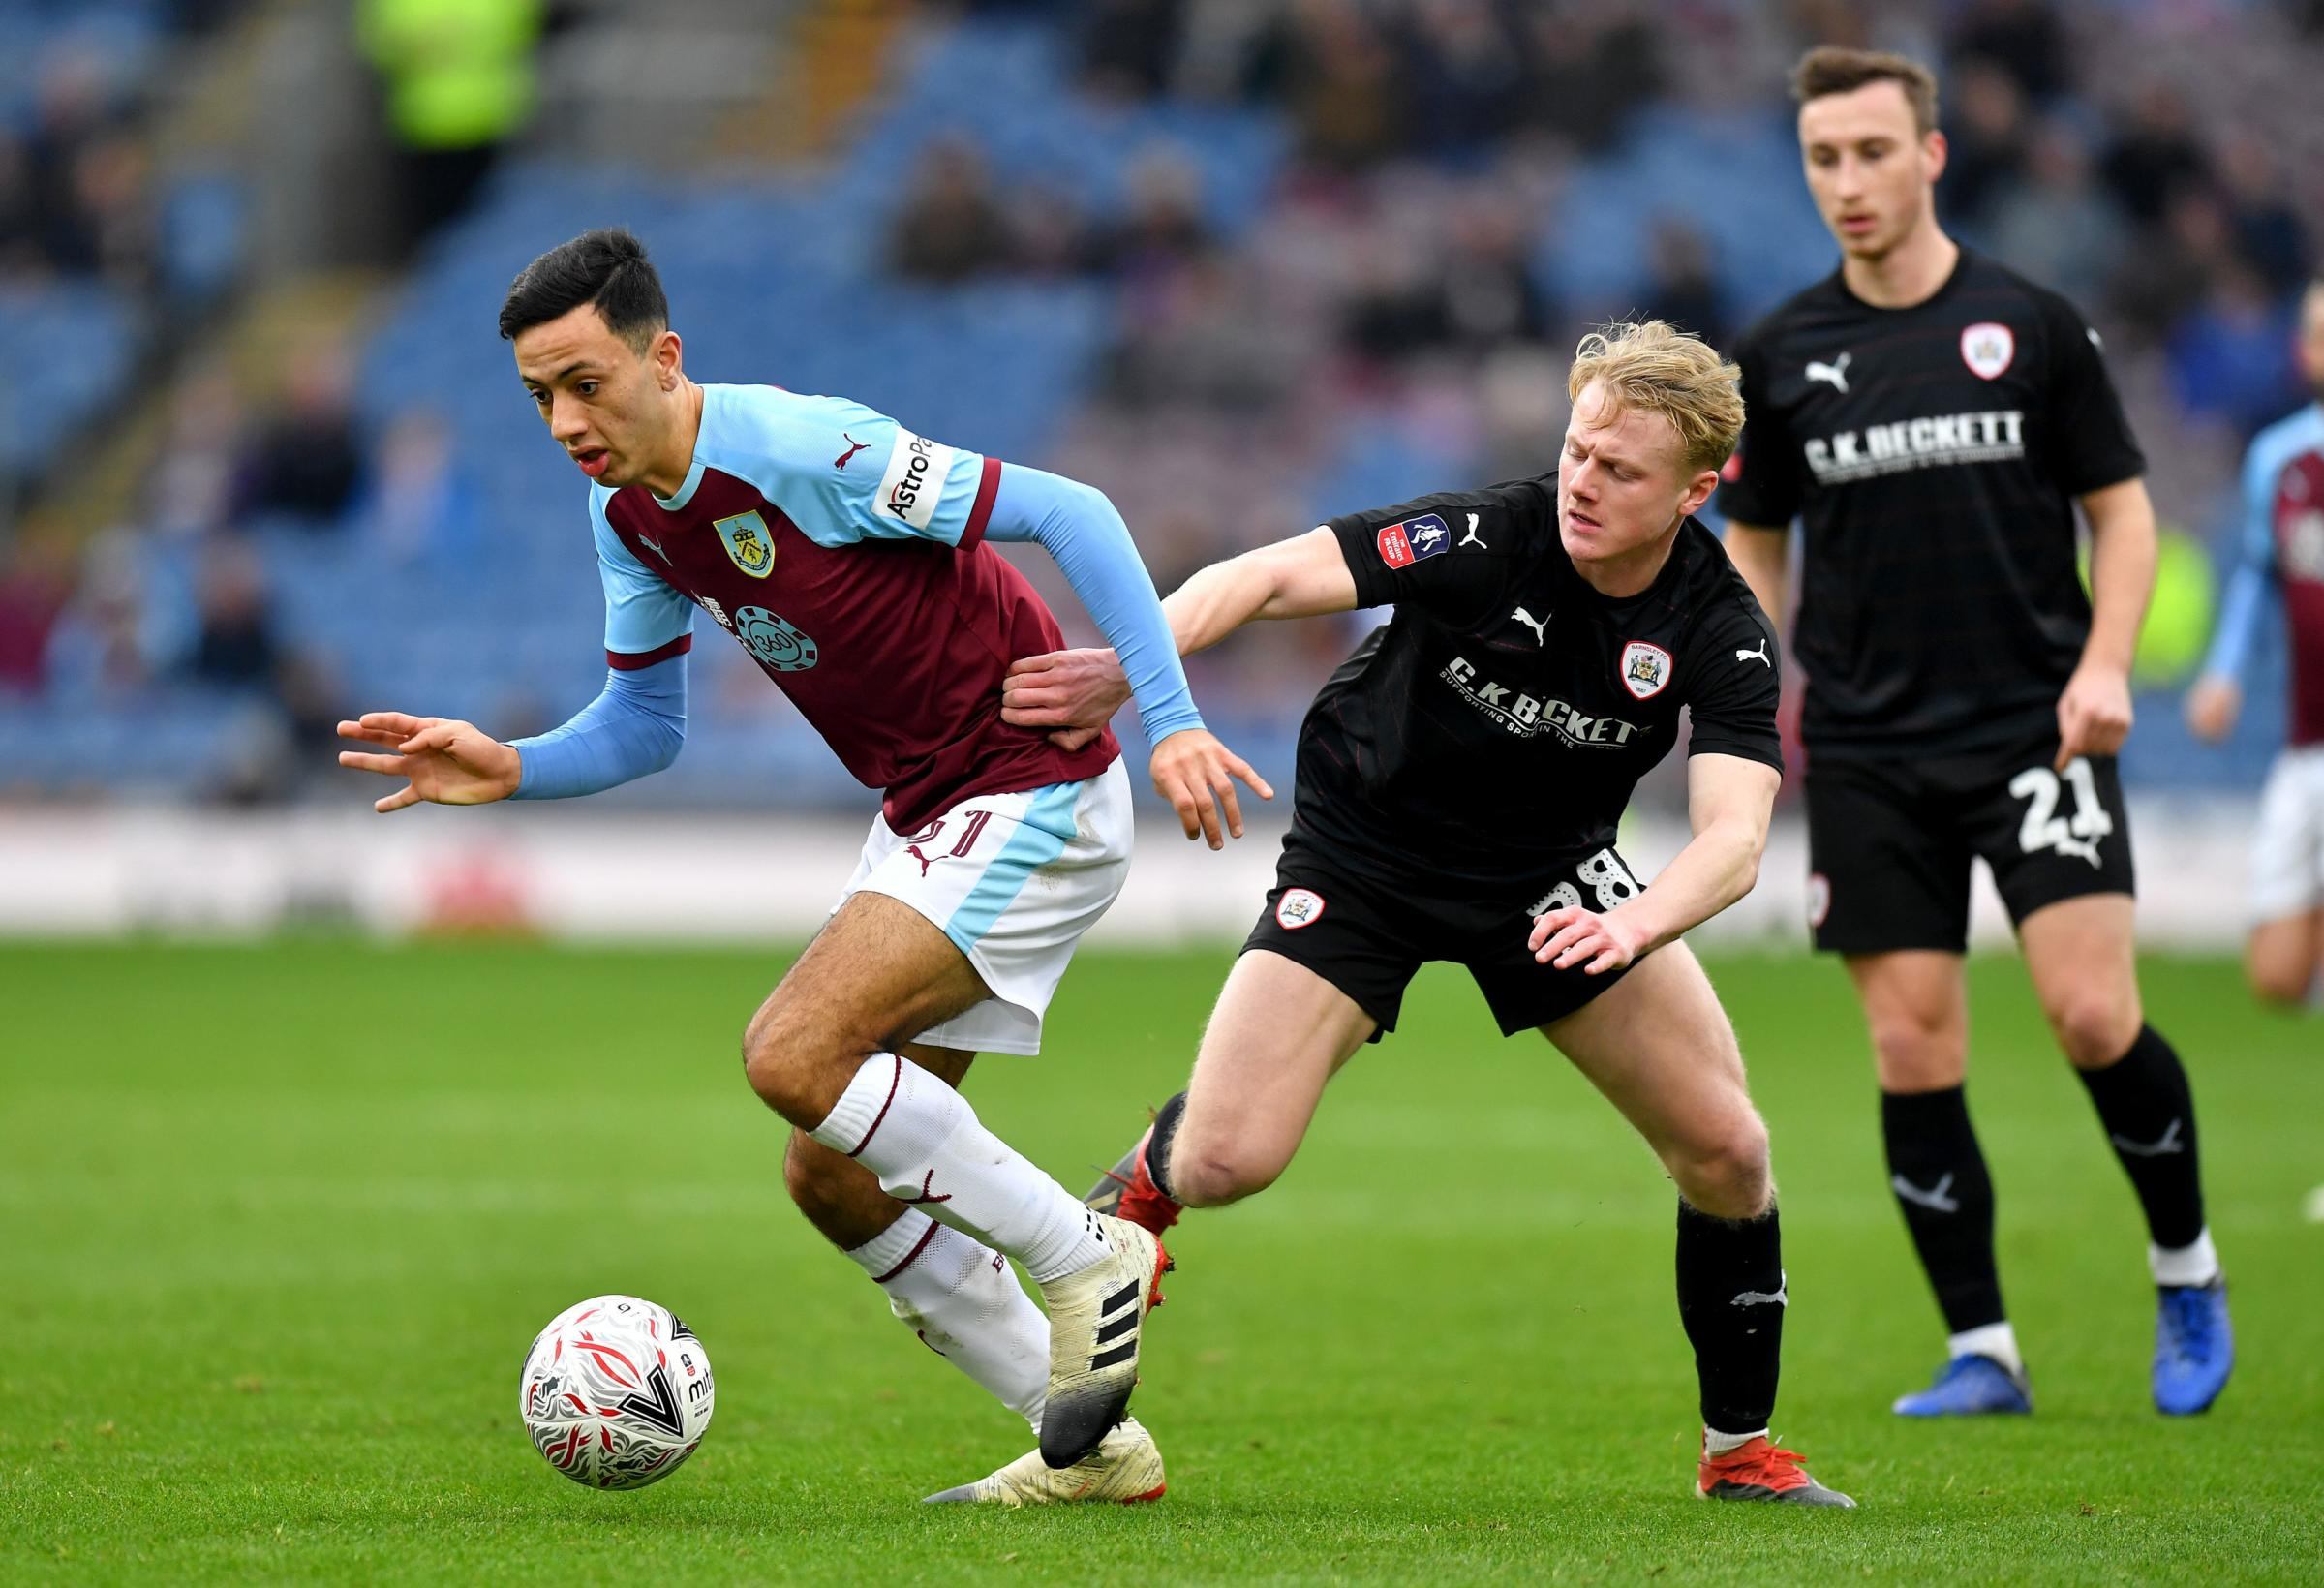 Burnley's Dwight McNeil (left) and Barnsley's Ben Williams (right) battle for the ball during the Emirates FA Cup, third round match at Turf Moor, Burnley. PRESS ASSOCIATION Photo. Picture date: Saturday January 5, 2019. See PA story SOCCER Burnle